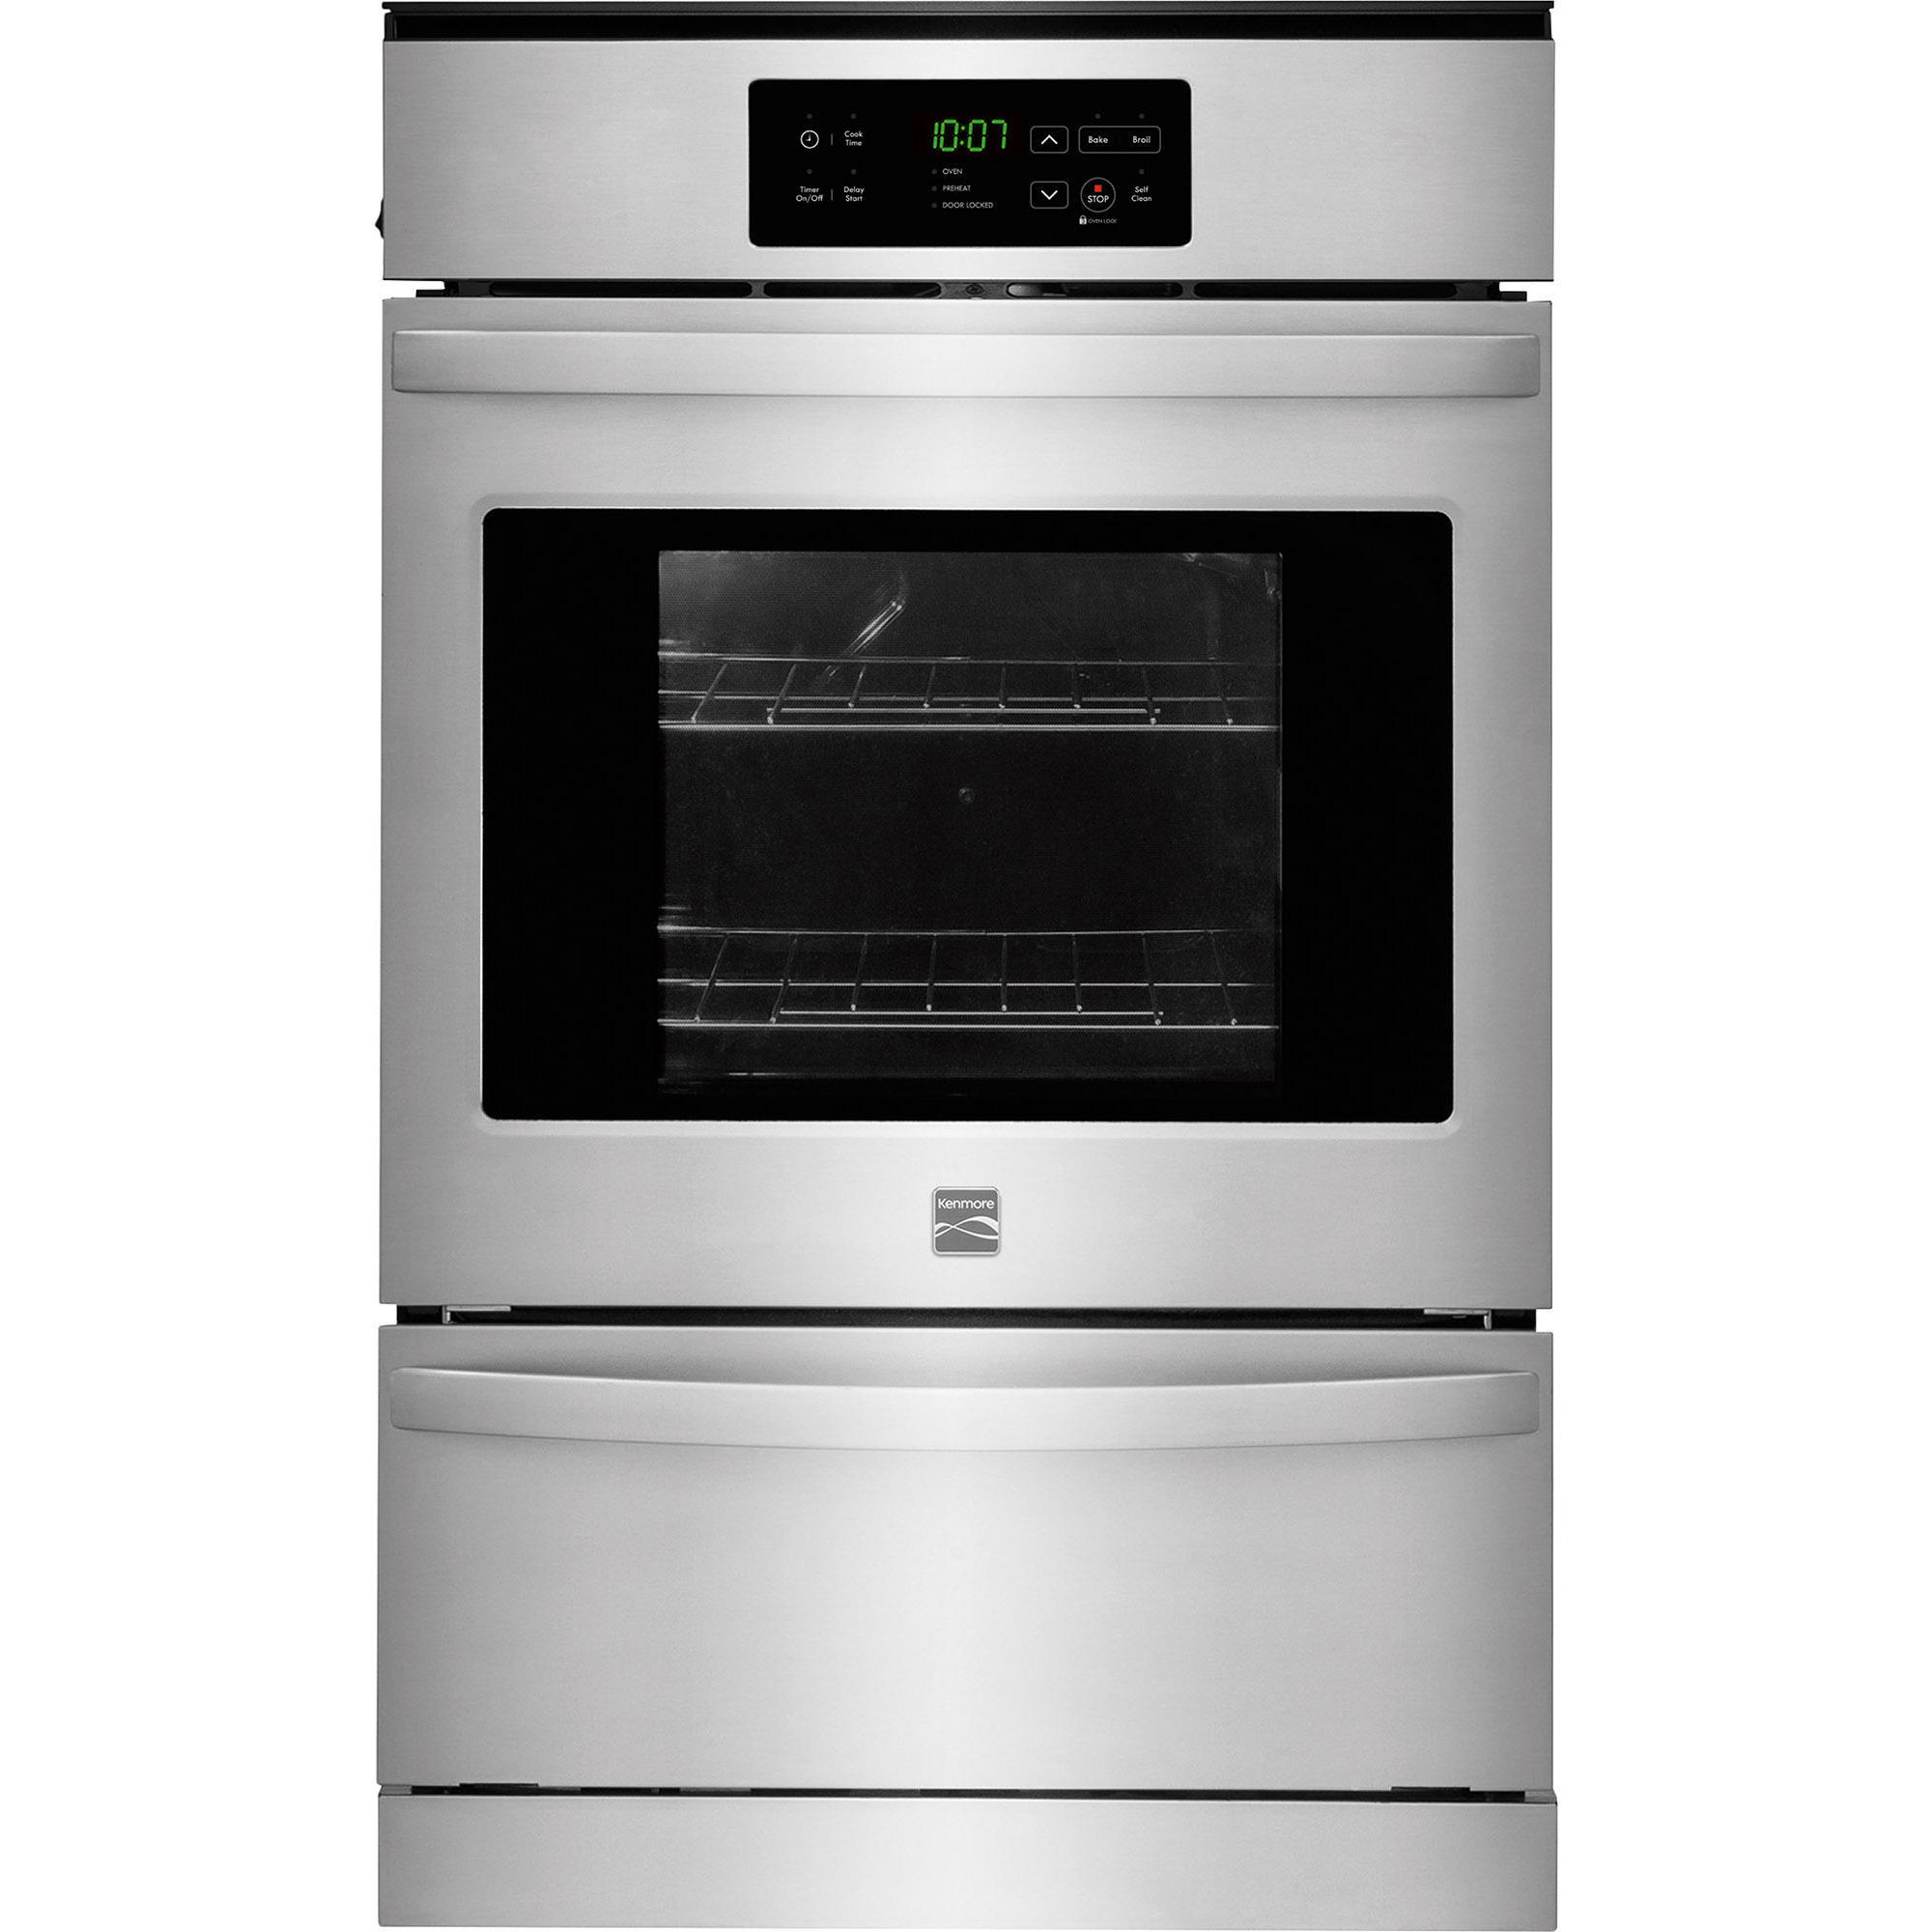 Kenmore 40303 24 Gas Wall Oven - Stainless Steel